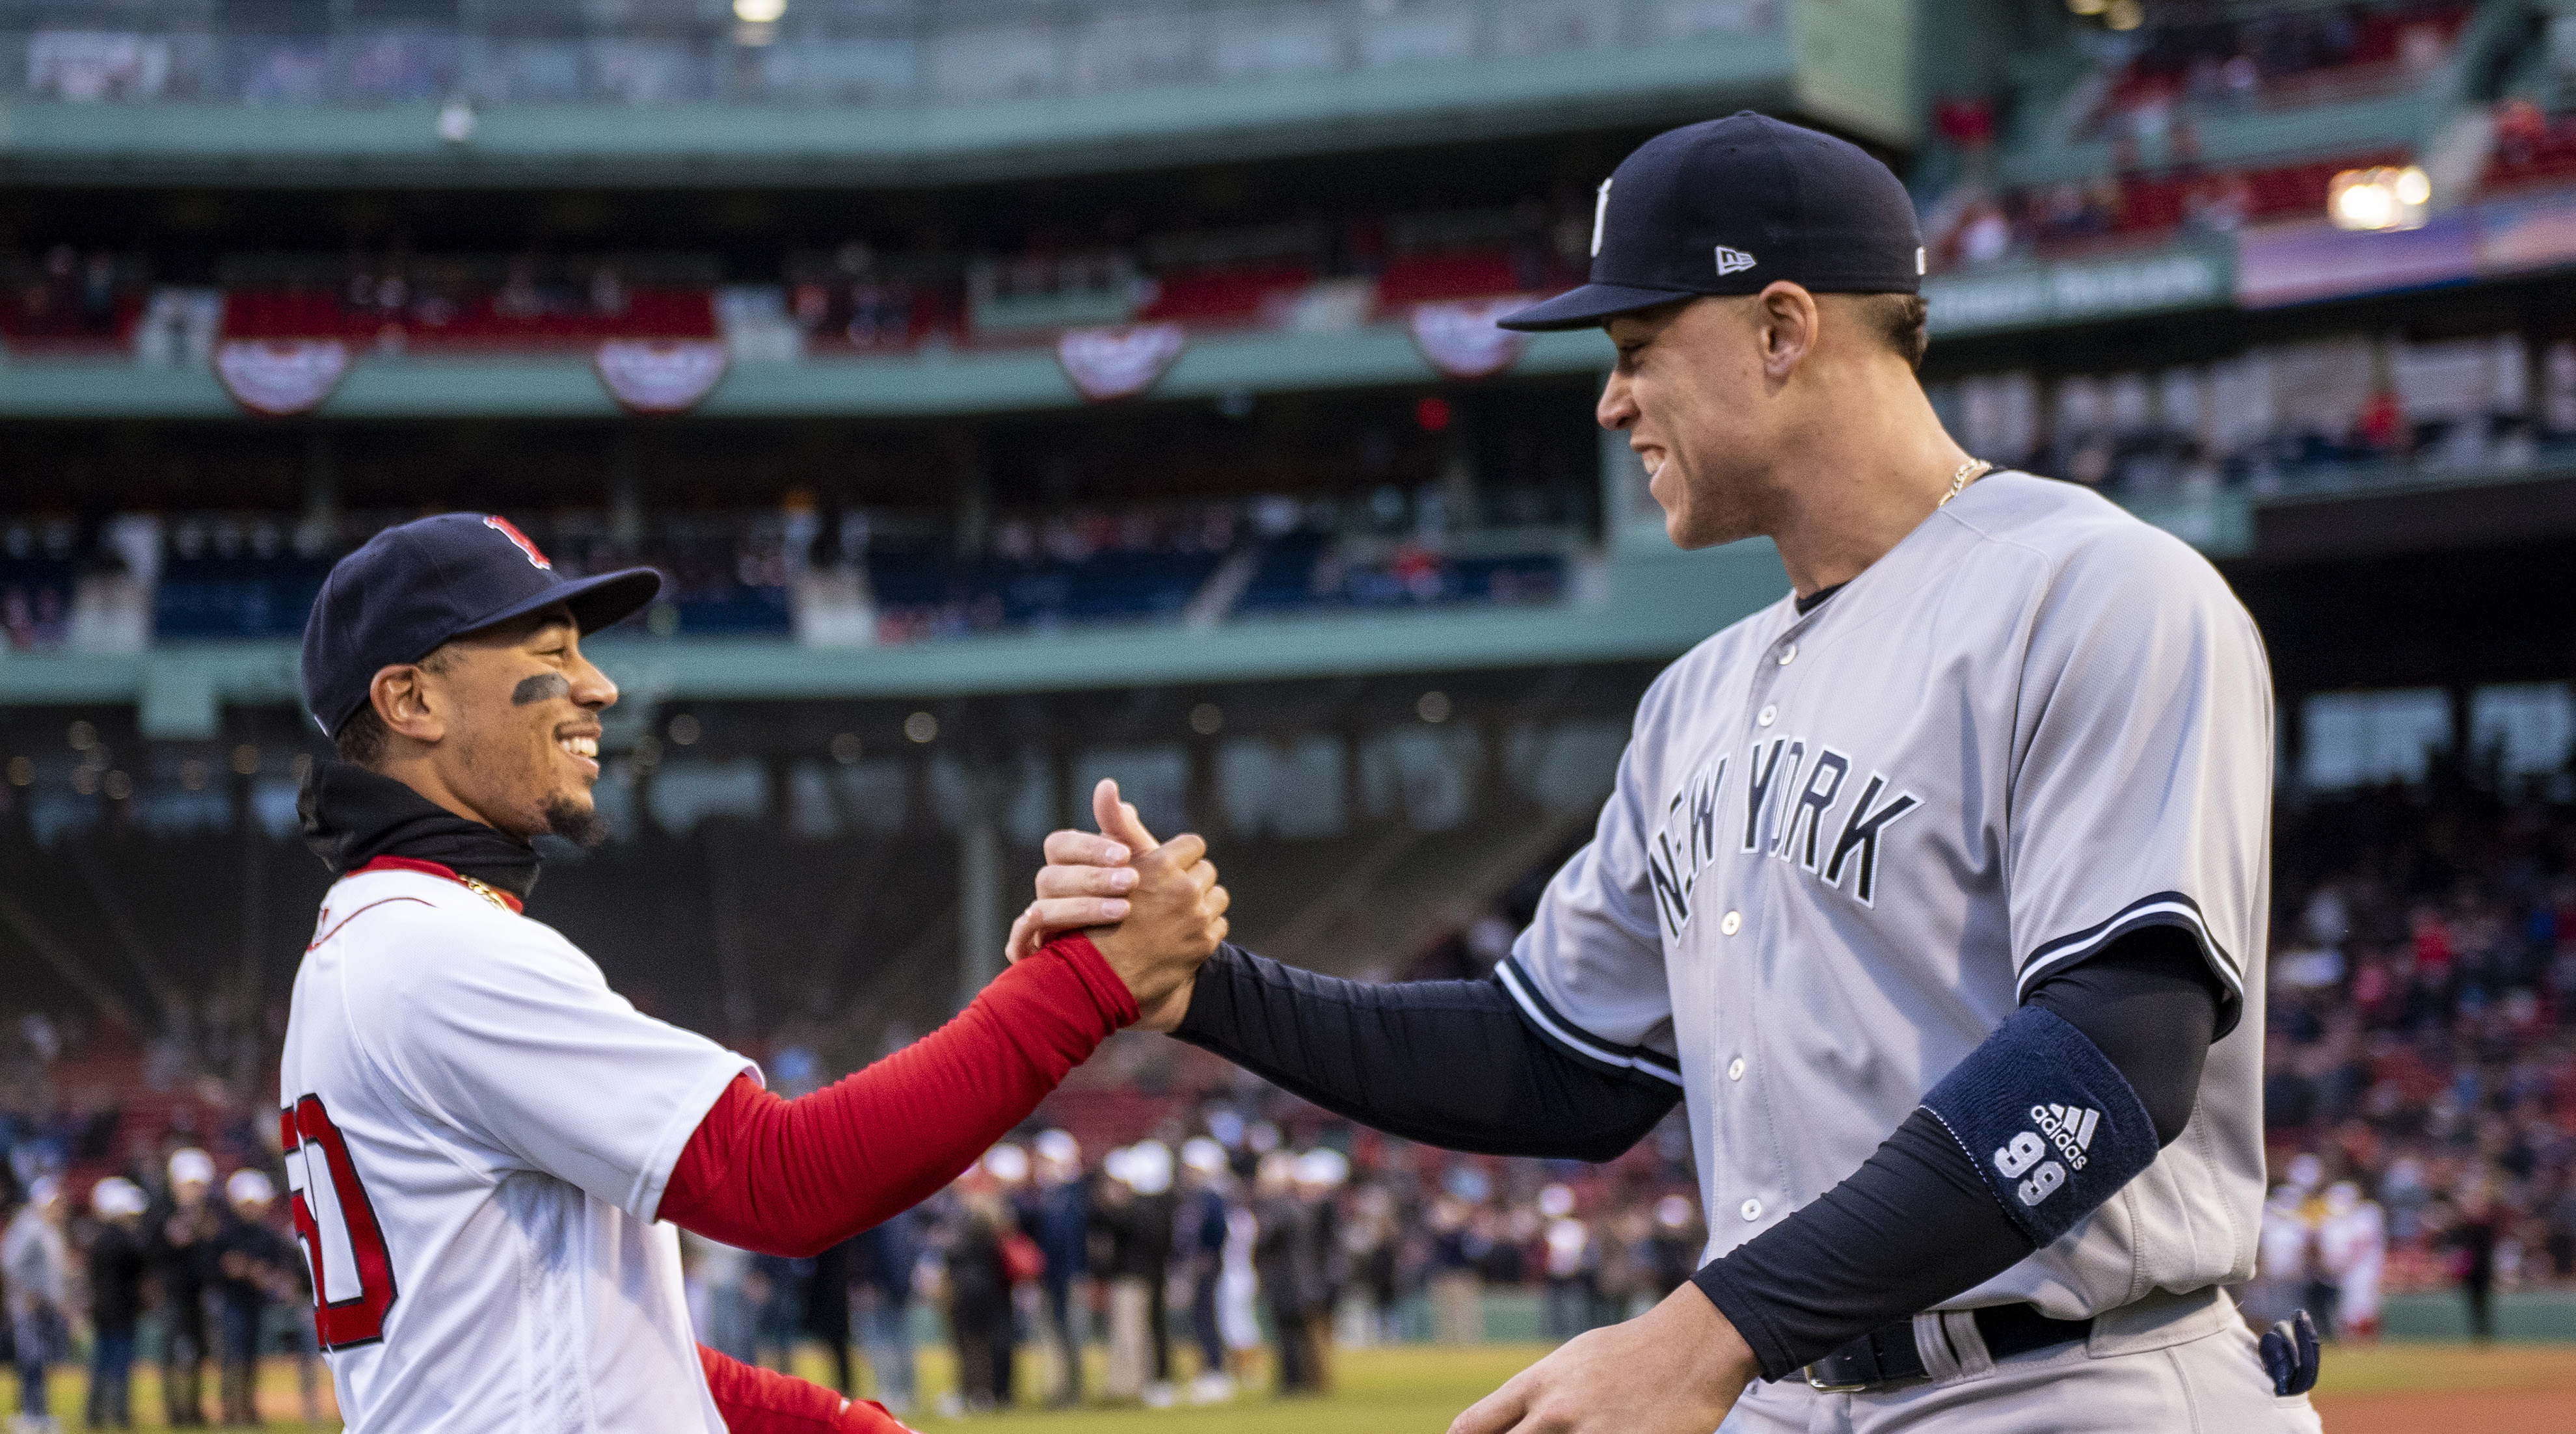 red sox vs yankees postseason history: here's how it's played out